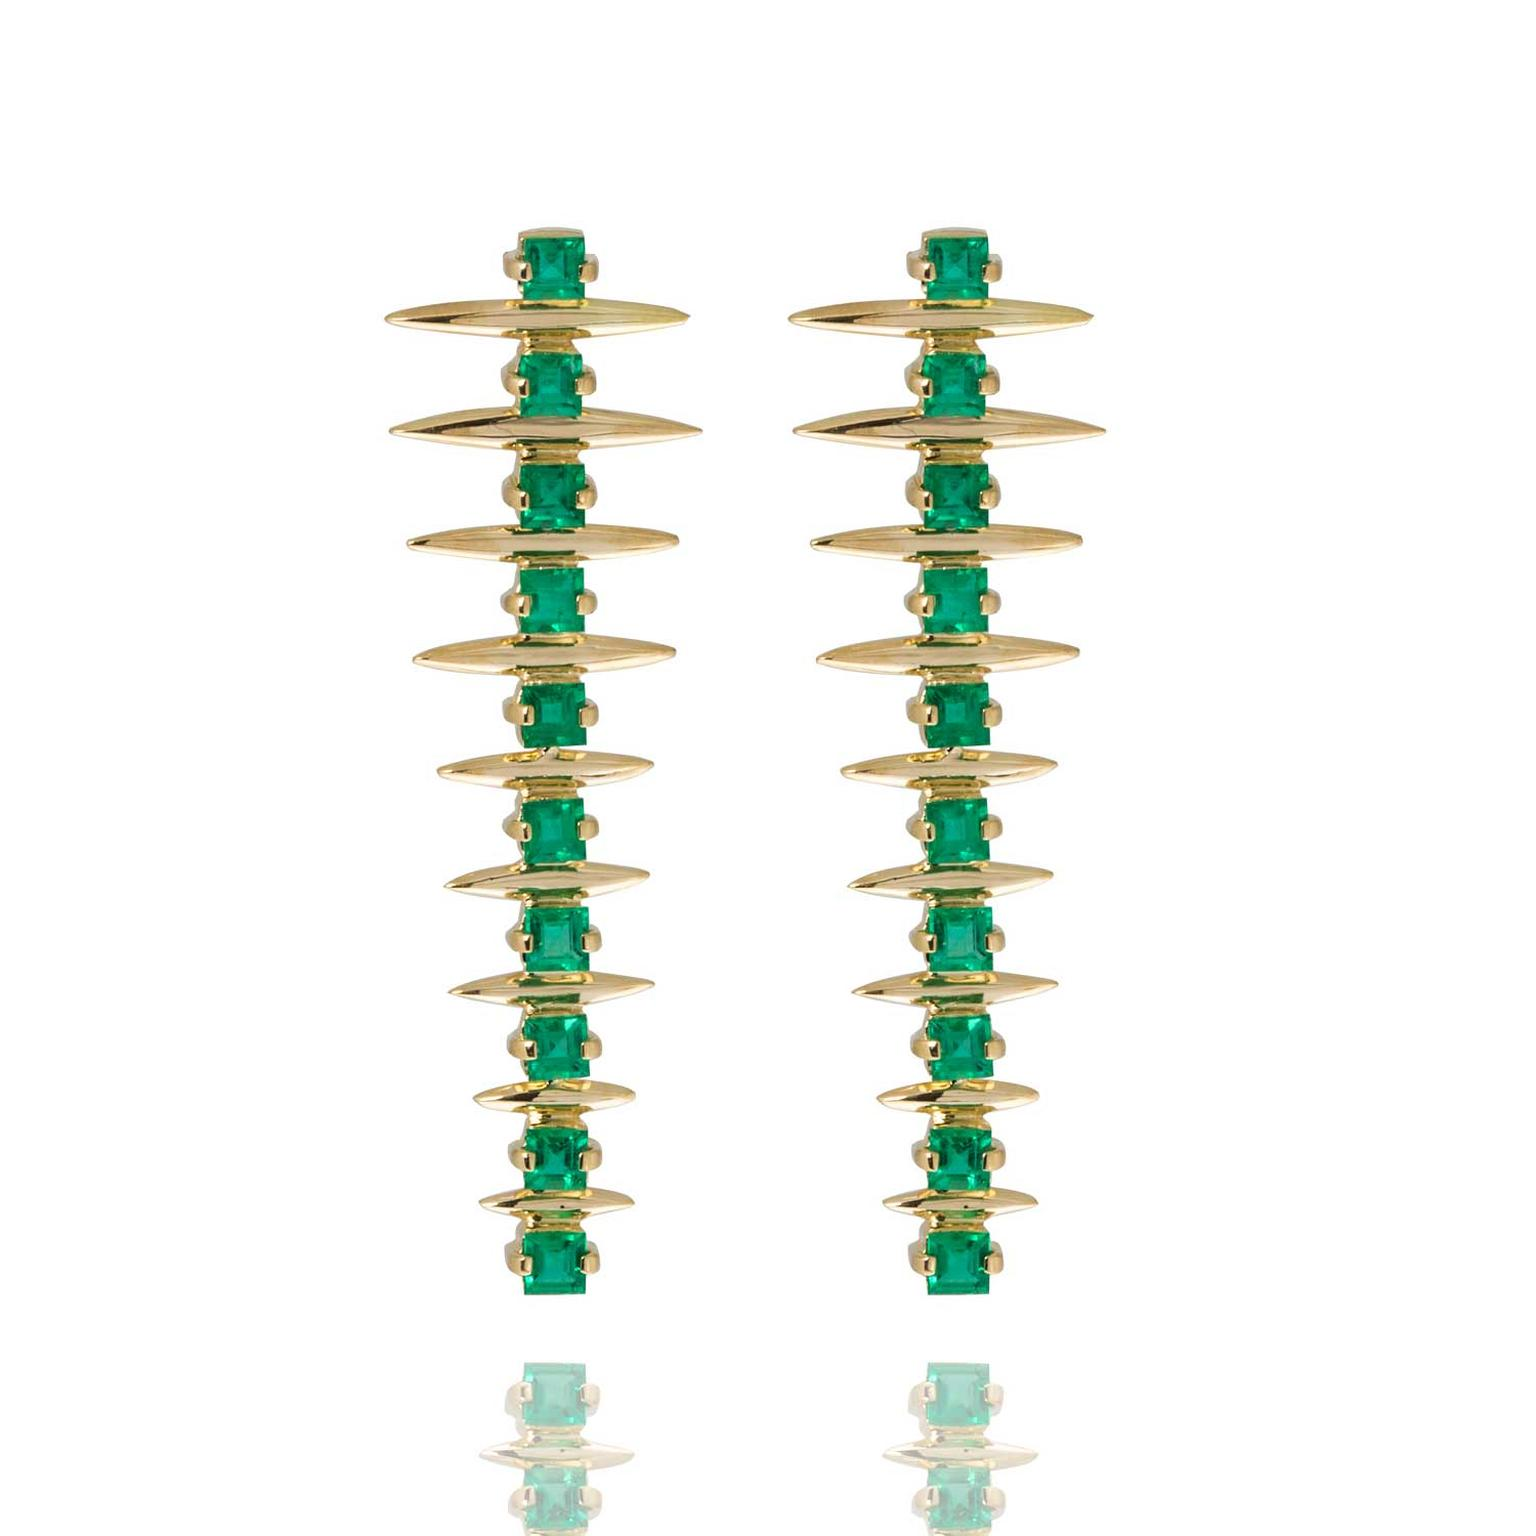 Carla Amorim emerald Fern earrings in yellow gold